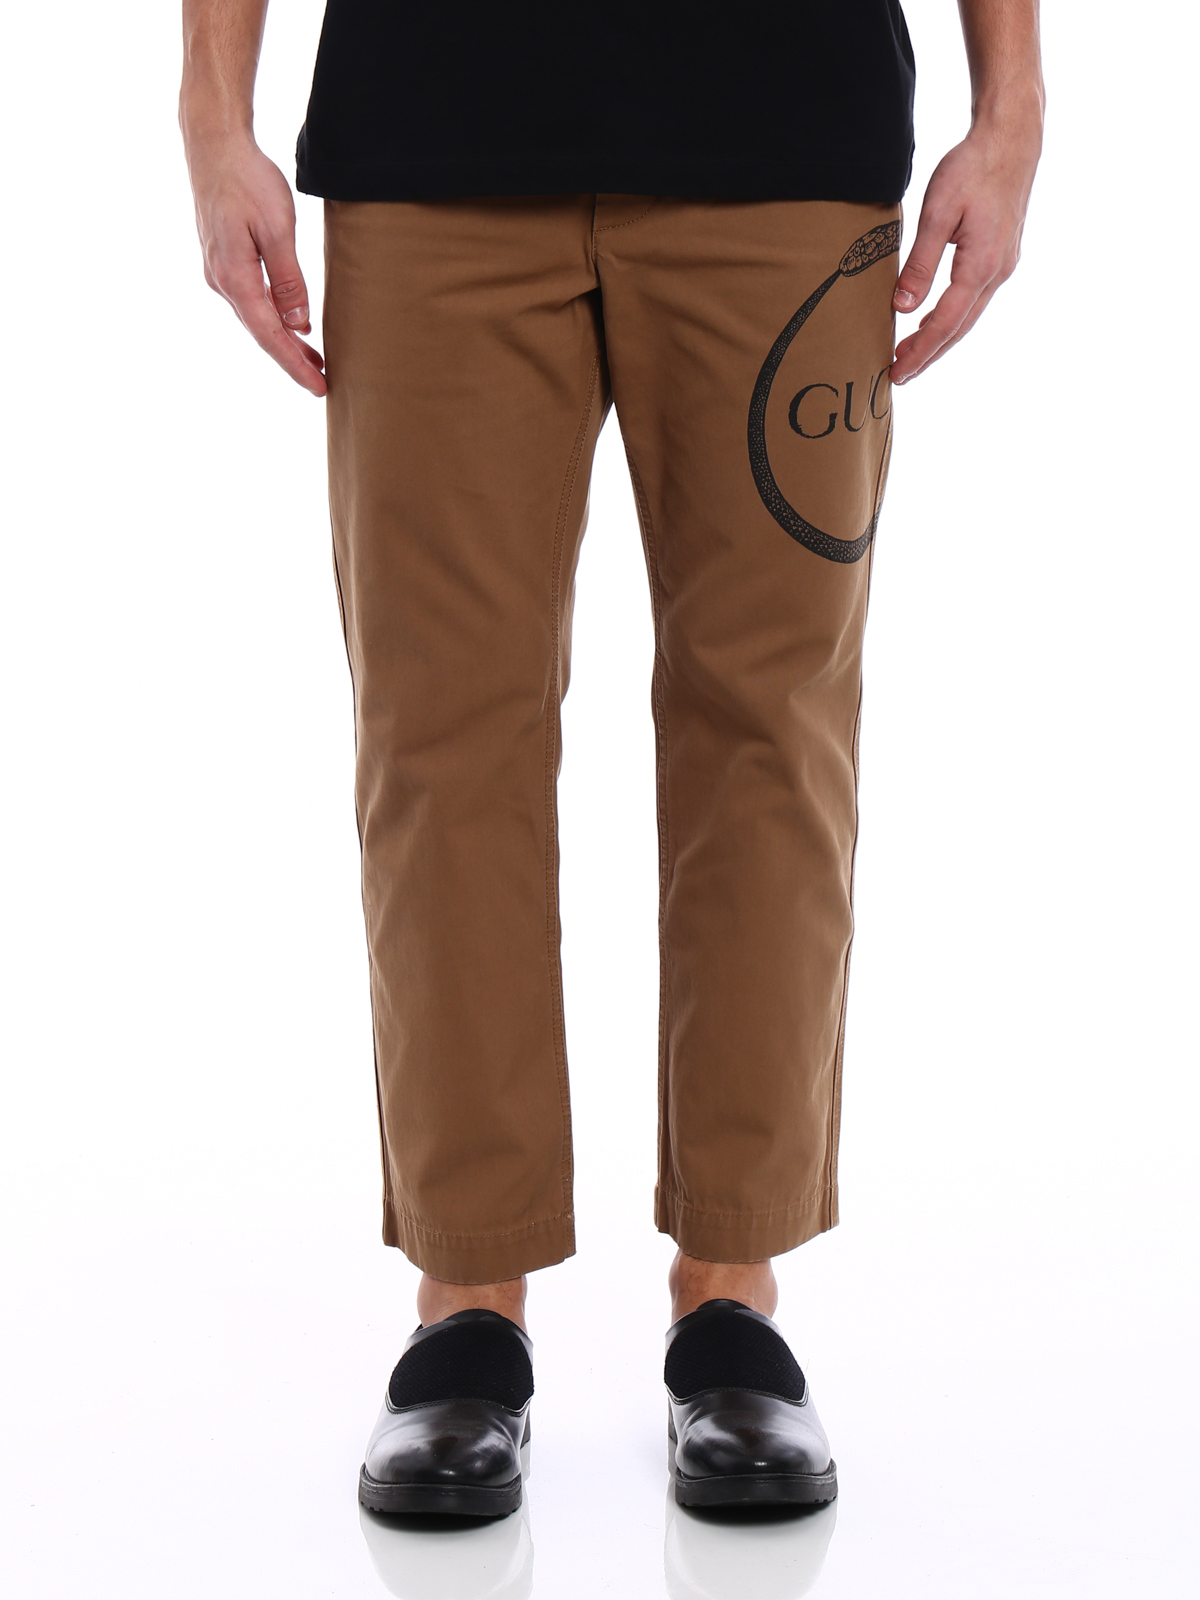 1cc0ddd489a iKRIX GUCCI  casual trousers - Ouroboros print worker chino pants